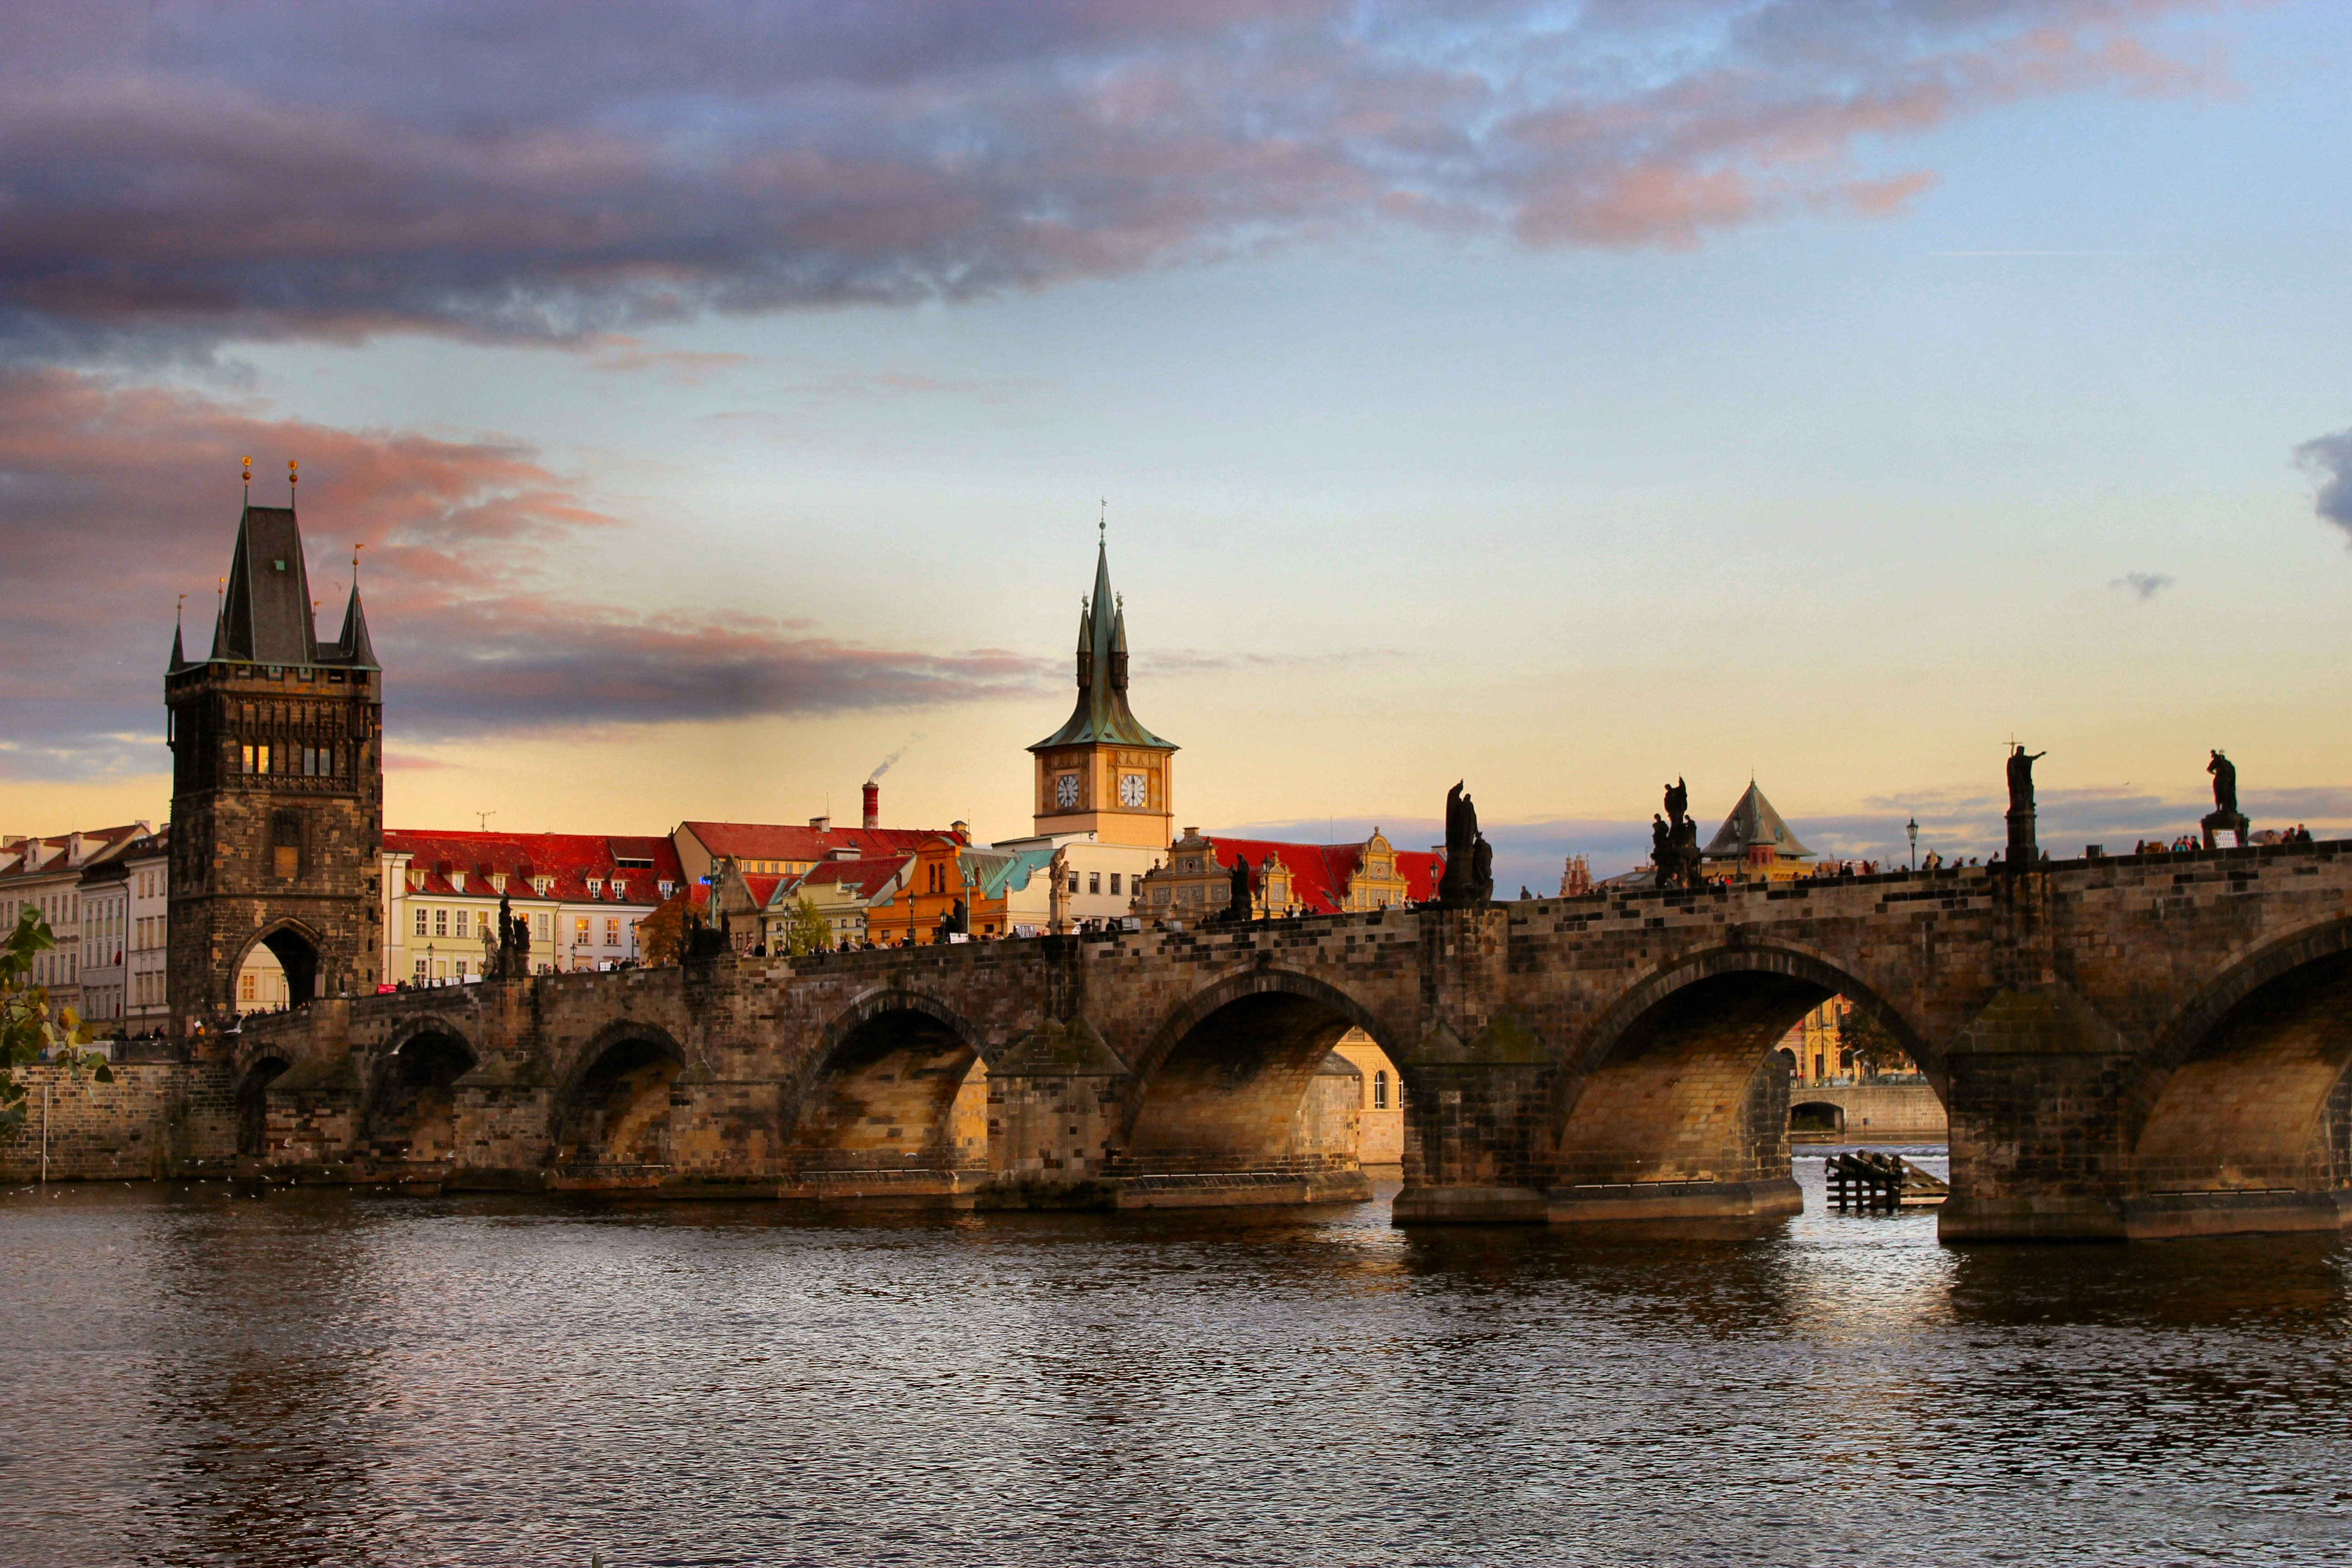 Charles IV wanted his stone bridge, built in 1357, to be a masterpiece of occult workmanship to protect his beloved city of Prague.